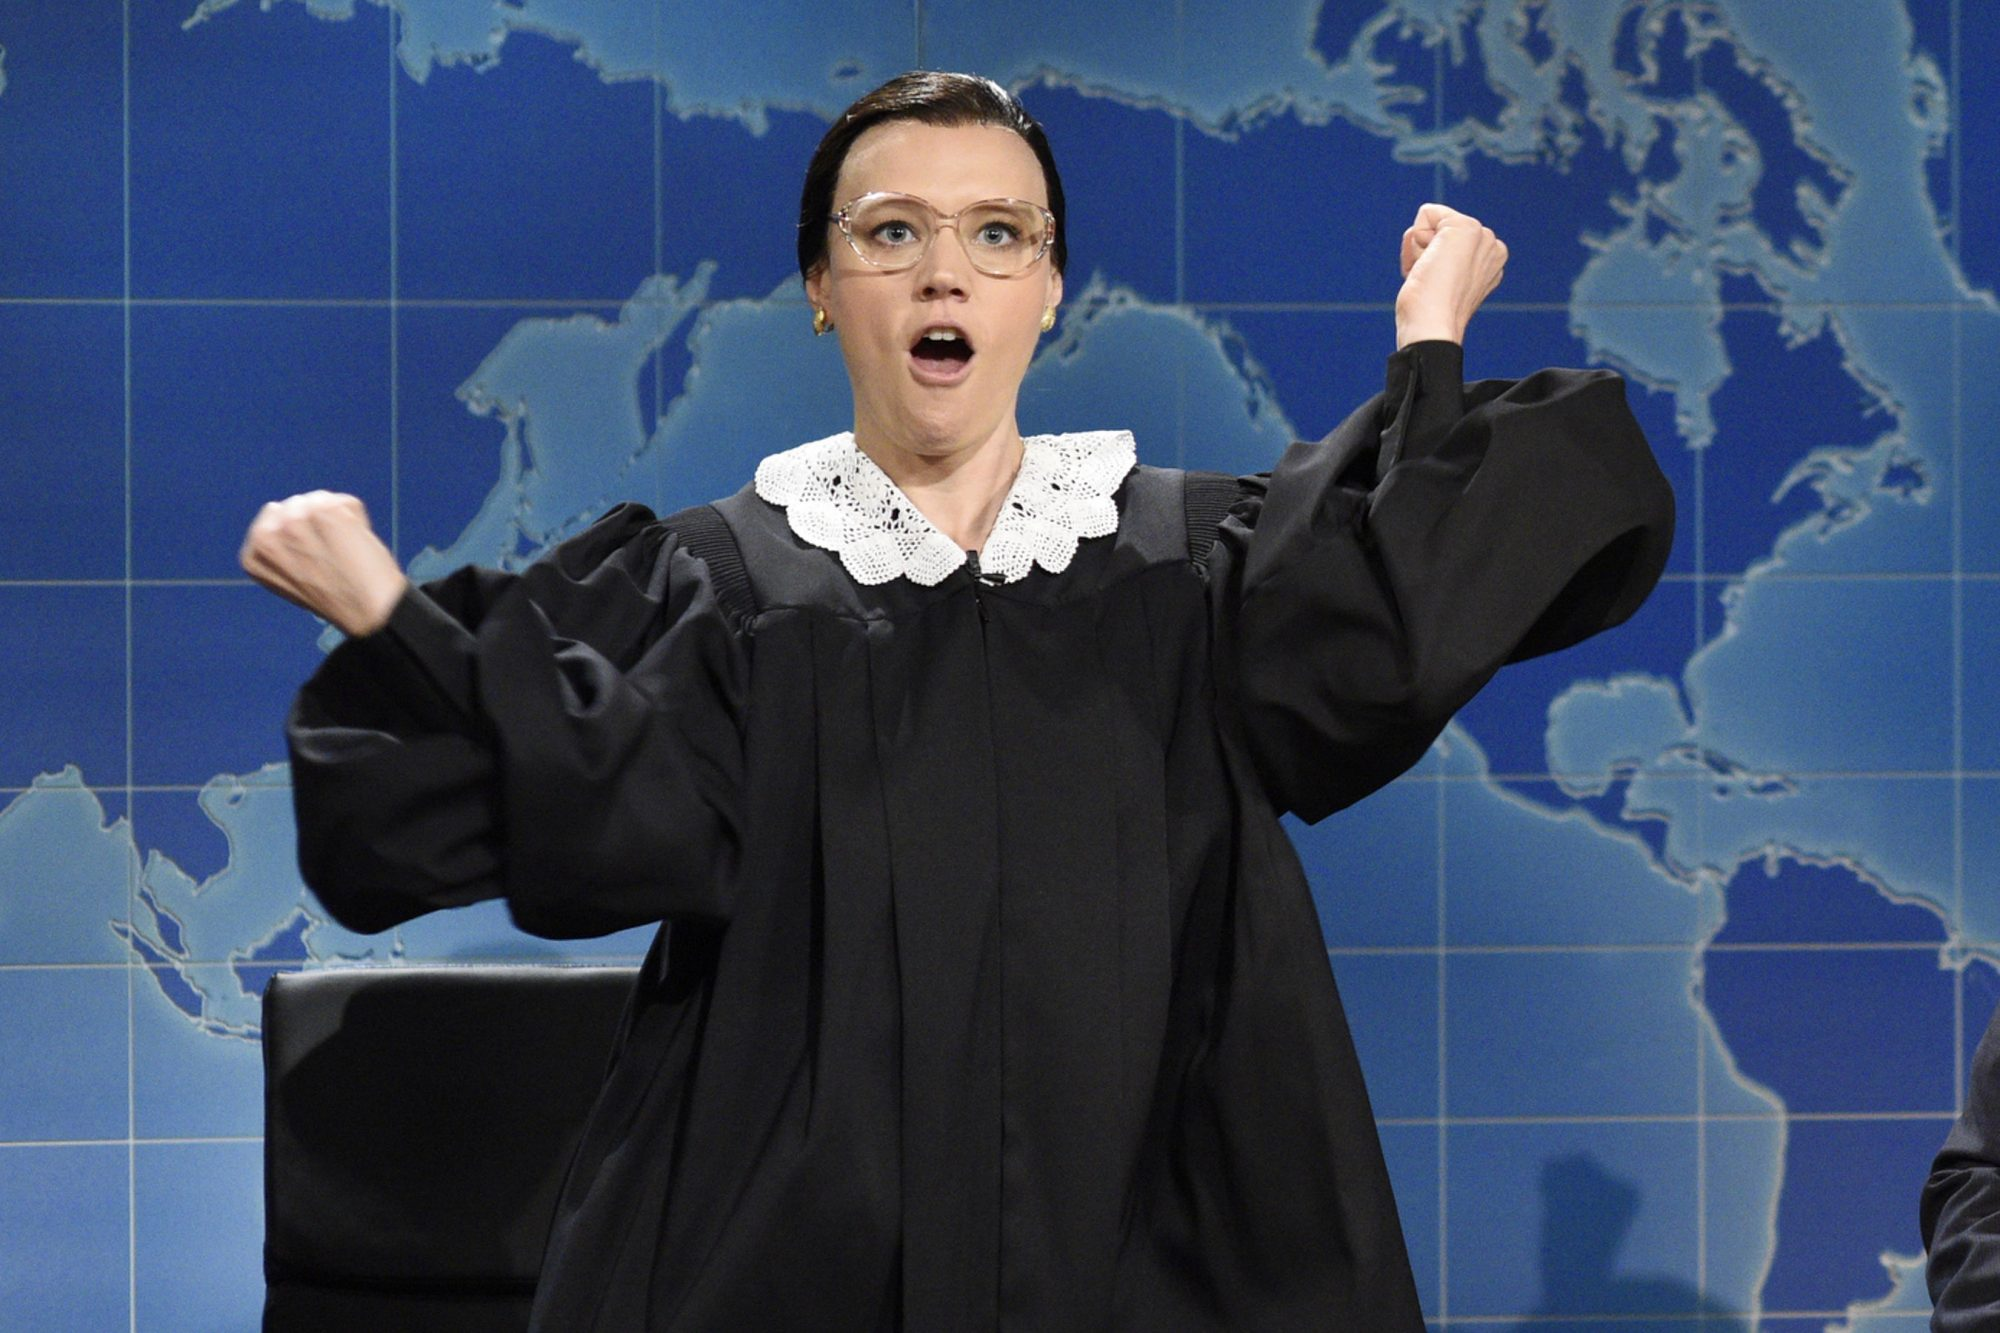 """SATURDAY NIGHT LIVE -- """"Gal Gadot"""" Episode 1727 -- Pictured: (l-r) Kate McKinnon as Ruth Bader Ginsburg Associate Justice of the Supreme Court of the United States, Colin Jost, Michael Che during """"Weekend Update"""" in Studio 8H on October 7, 2017 -- (Photo by: Will Heath/NBC/NBCU Photo Bank via Getty Images)"""